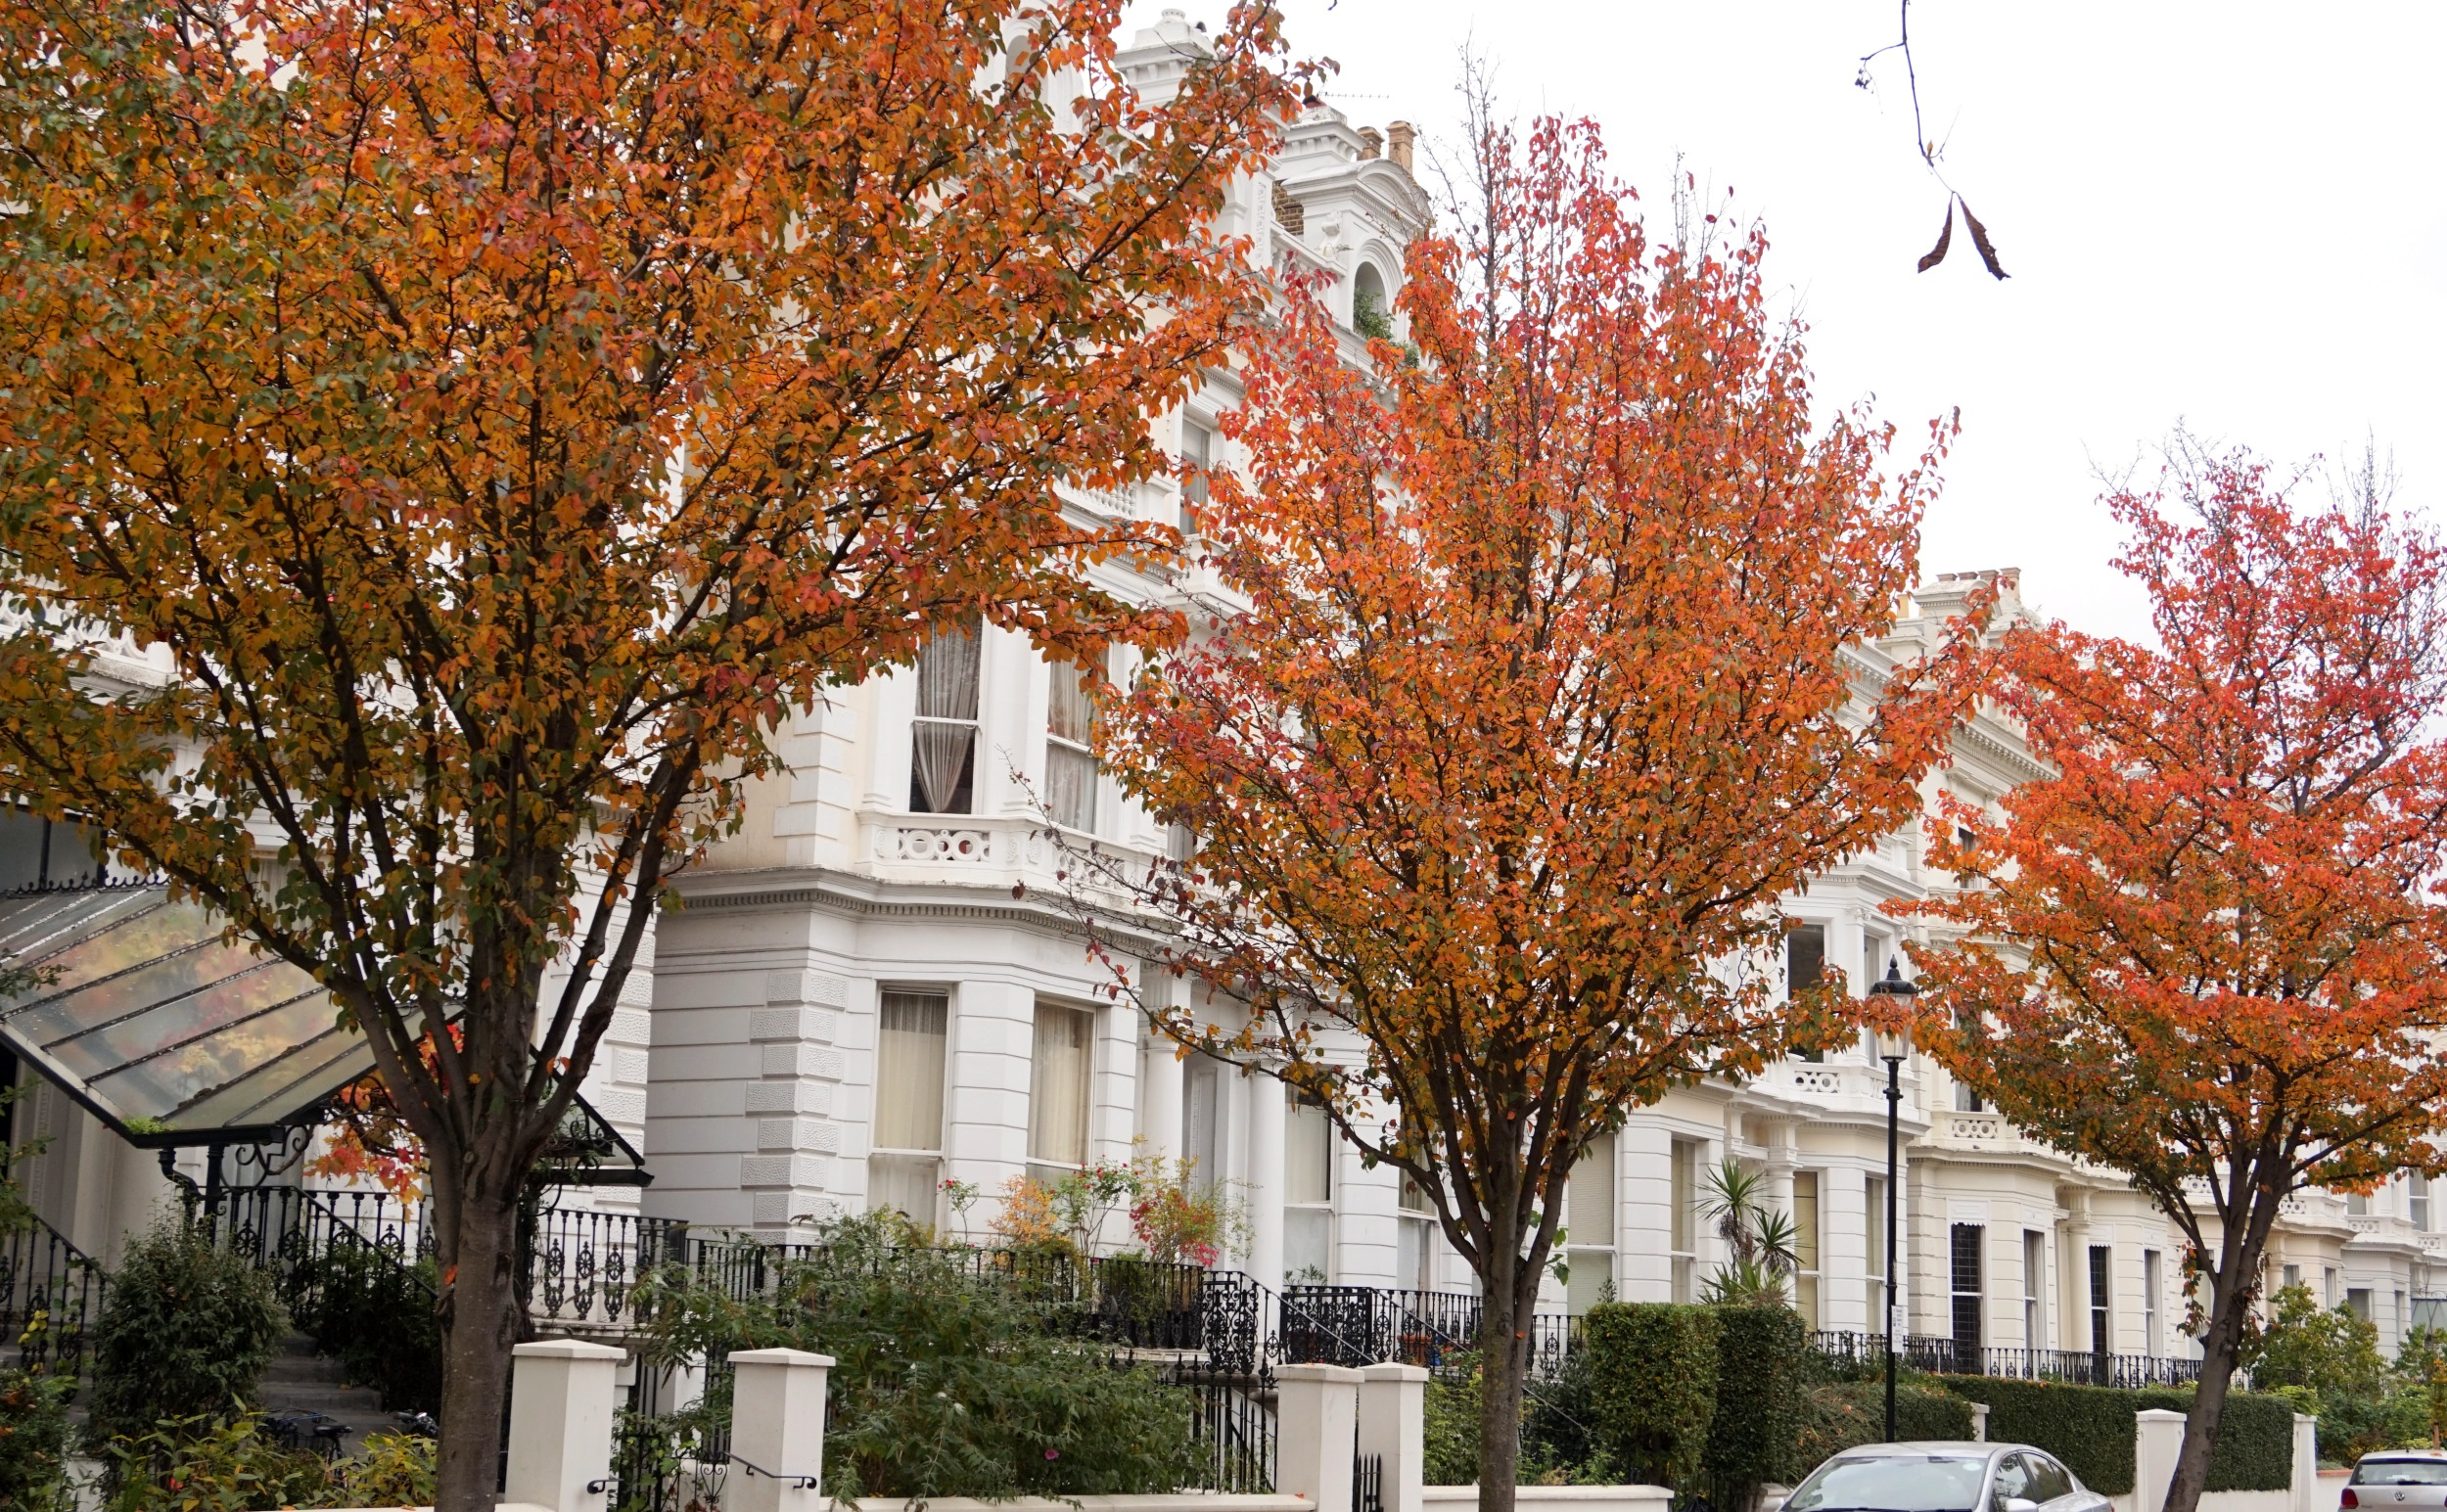 automne16-notting-hill-4